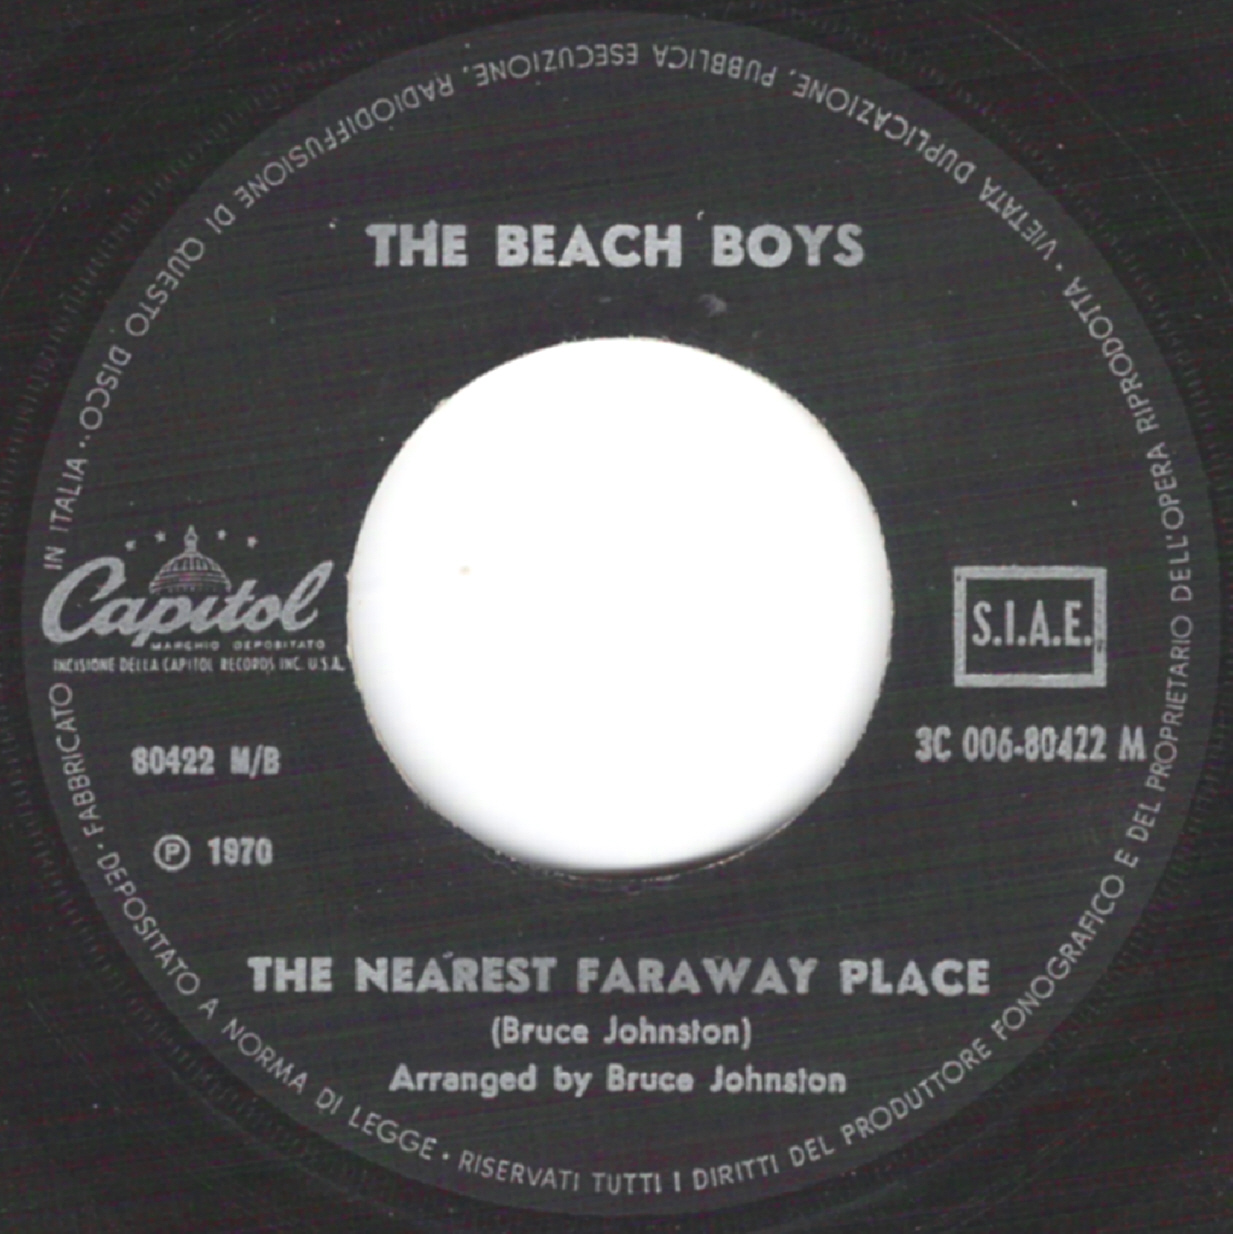 beach boys on 45 italy capitol 1967 1970. Black Bedroom Furniture Sets. Home Design Ideas